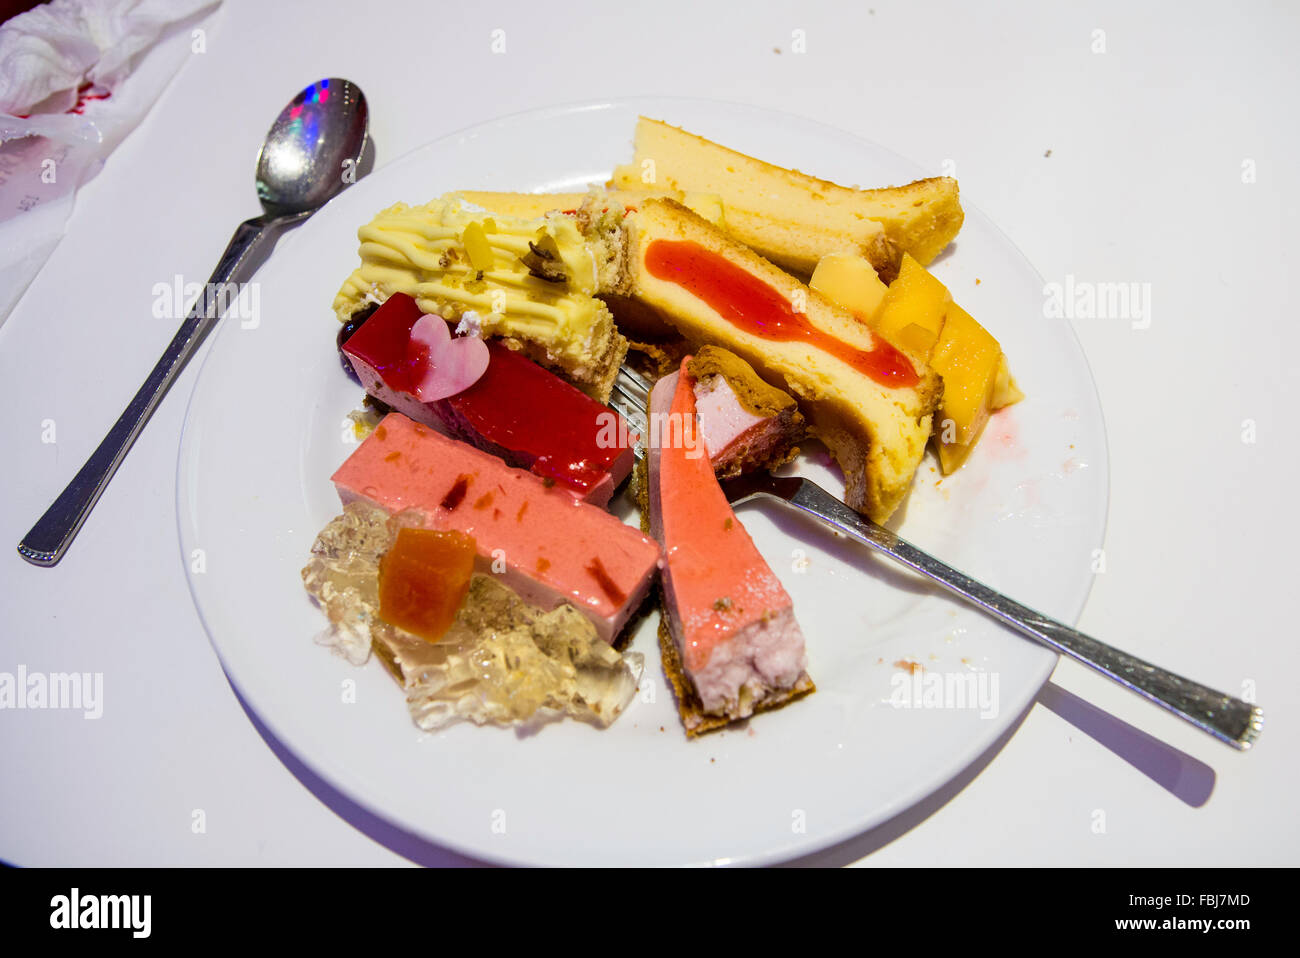 Japan. 'Sweet Paradise' Japanese famous all-you-can-eat cake and sweet restaurant. Plate, with folk, full - Stock Image